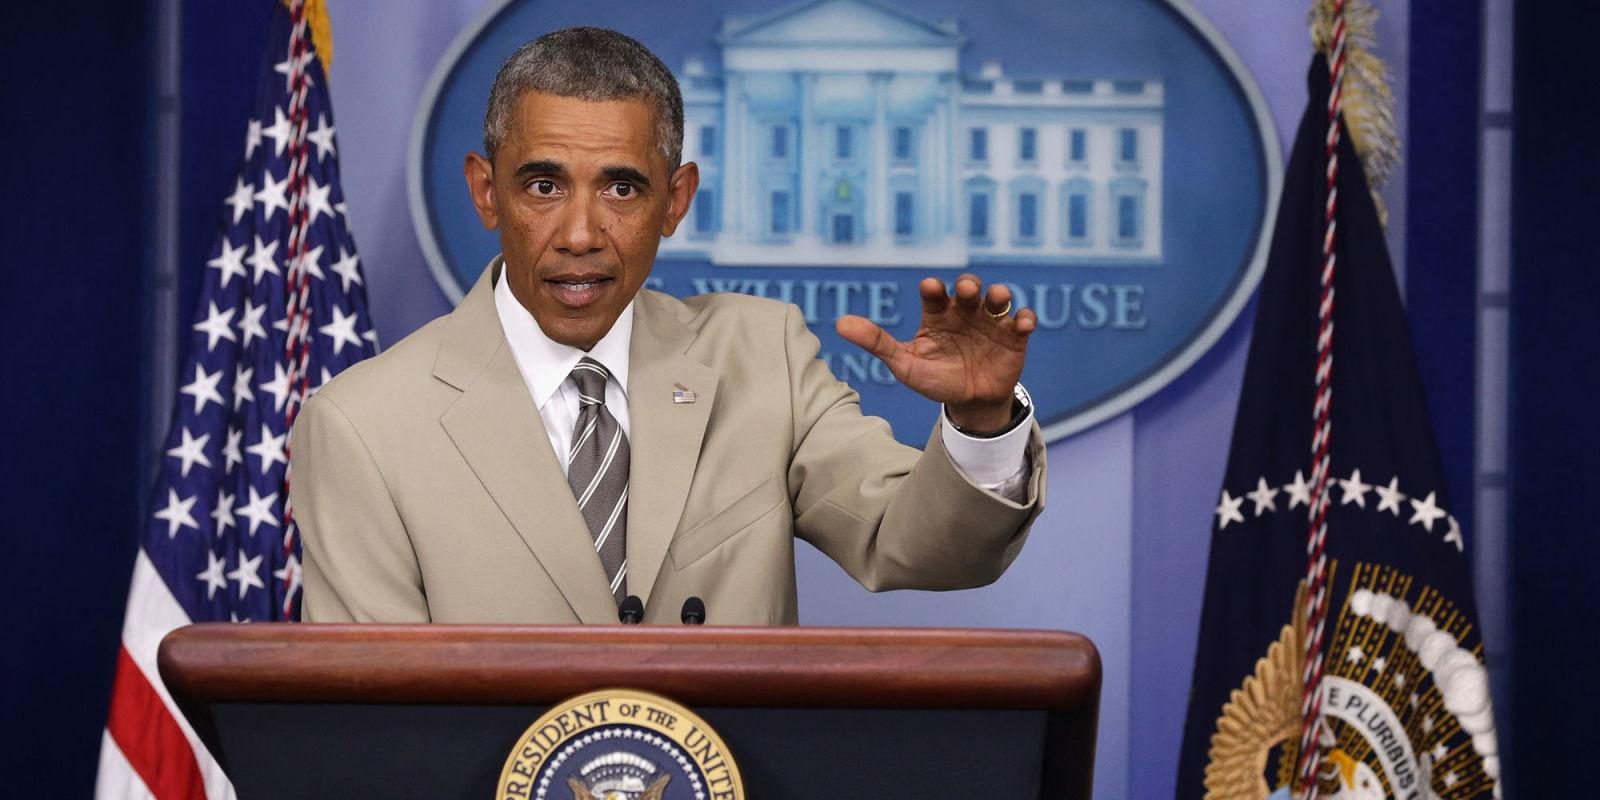 President Obama Wanted to Wear His Tan Suit for His Last Press Conference But Michelle Convinced Him Not to